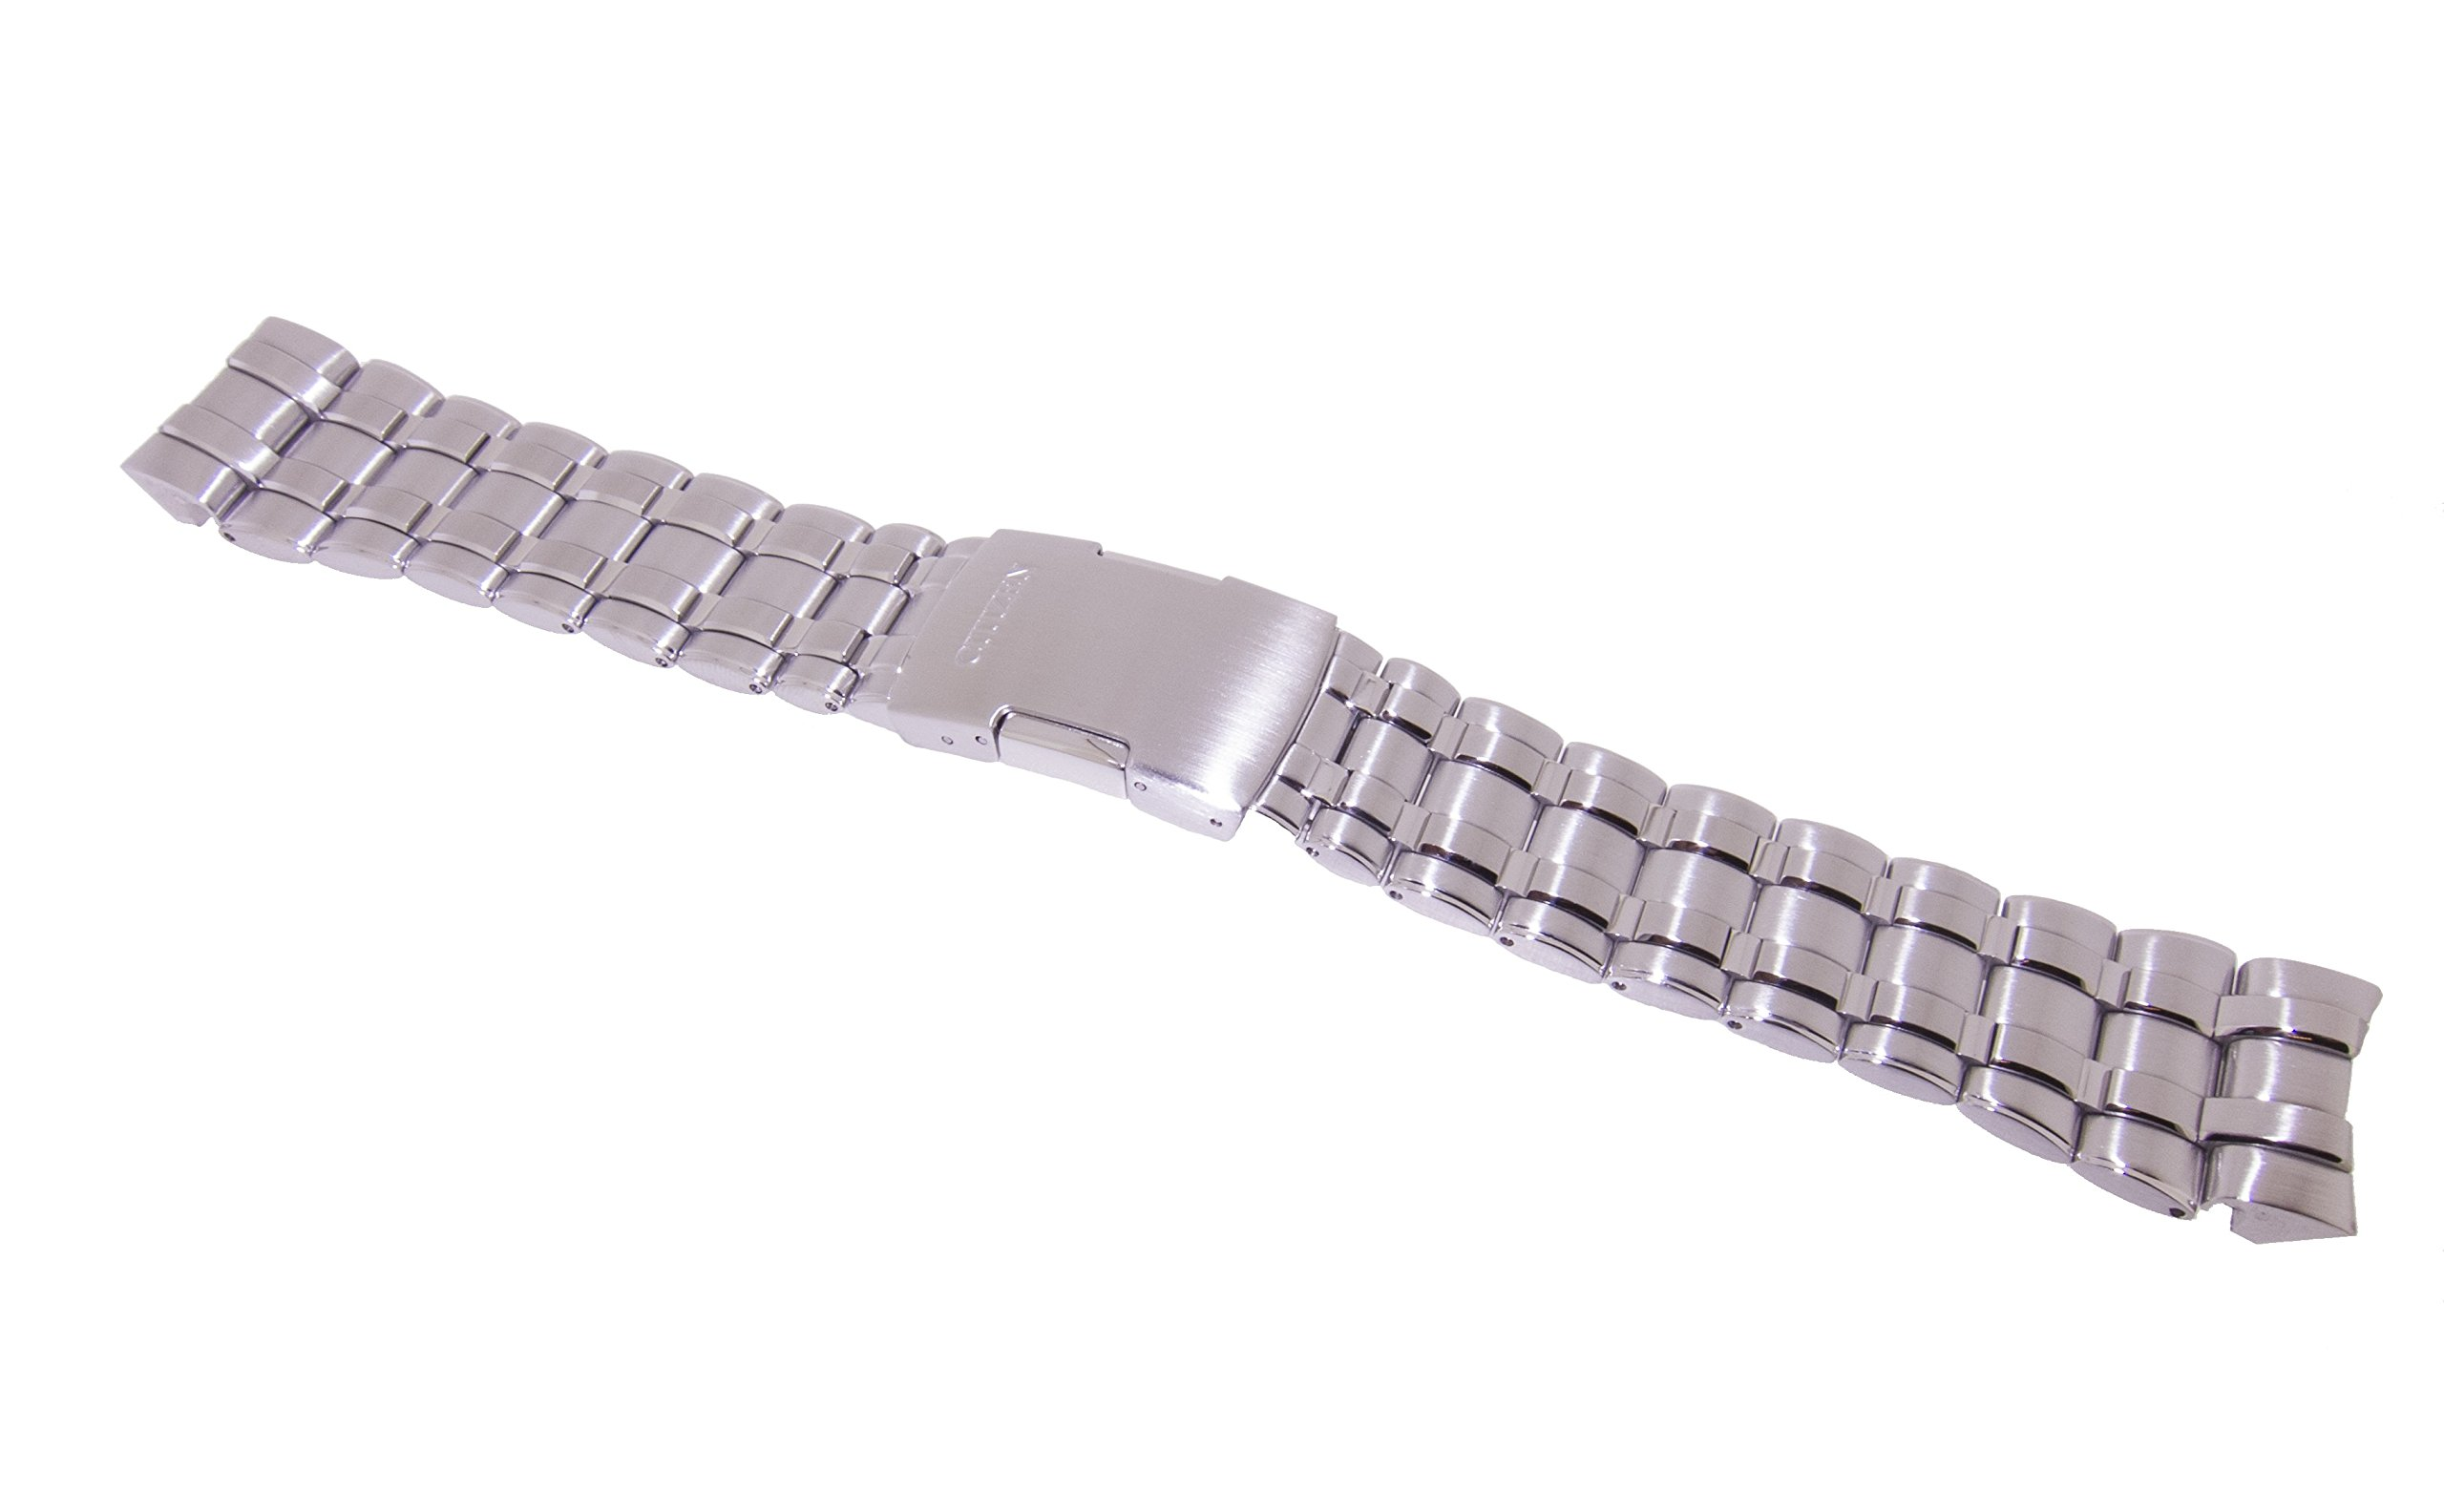 Citizen 59-S02802 Original Replacement Silver Tone Stainless Steel Watch Band Strap fits JY0000-53E JY0001-51E JY0020-64E JY0040-59L JY0100-59E U600-S041341 U600-S048257 U600-S049679 U600-S052190 U600-S069092